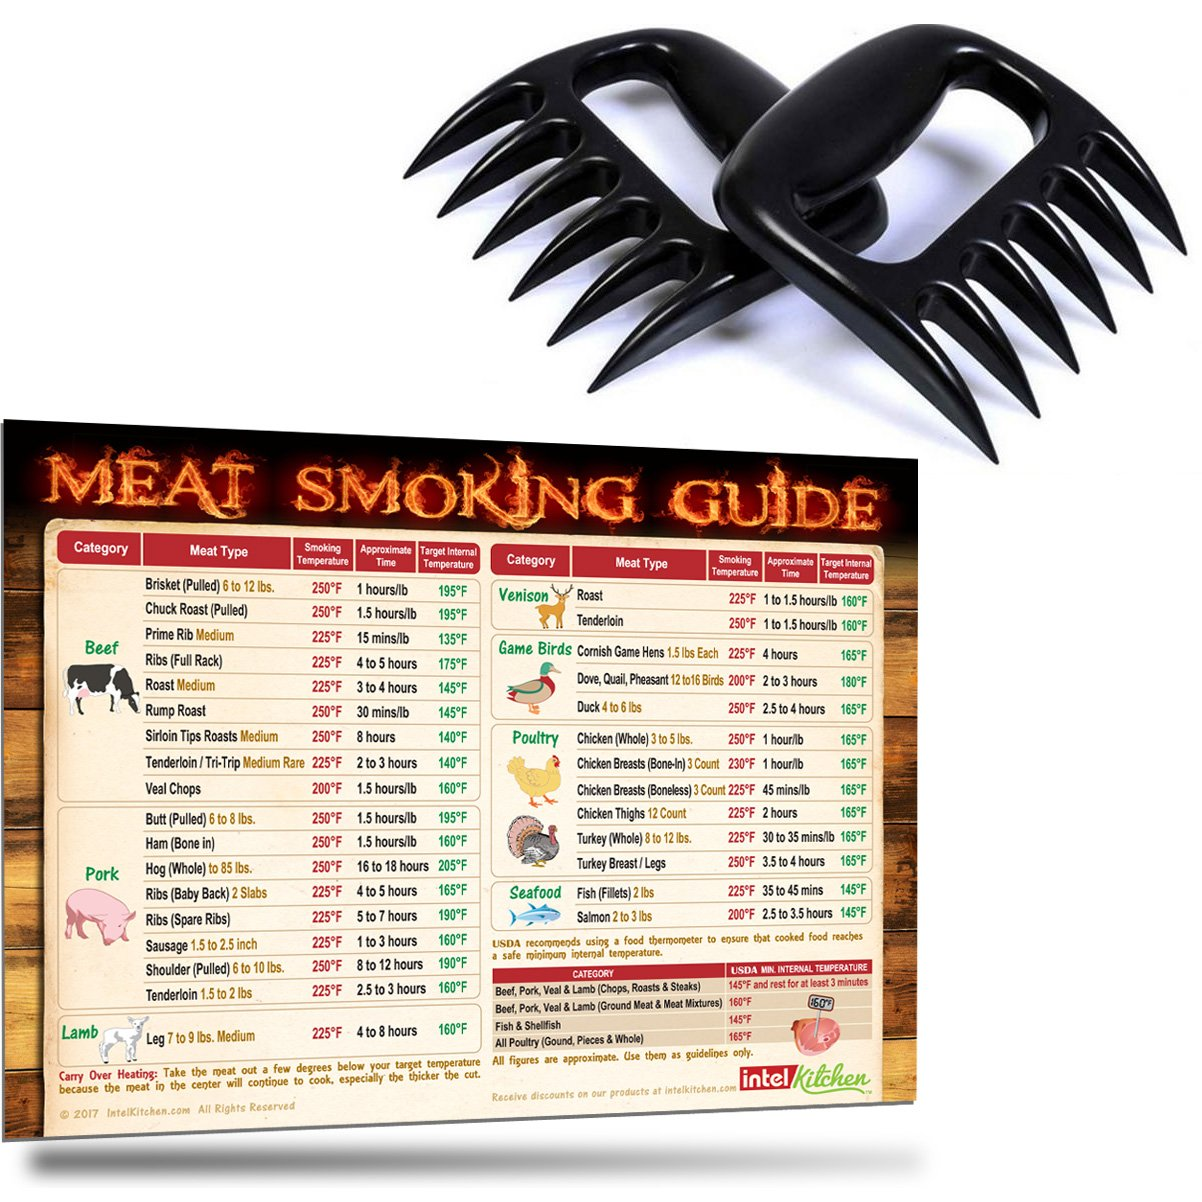 """BBQ Smoker Accessories Gifts: Best Meat Smoking Time & Temperature Guide 8""""x11"""" Magnet + 2 Bear Claws Meat Shredder Paws for Pulled Pork Beef Chicken Turkey BPA Free Meat Claws Handlers Forks"""